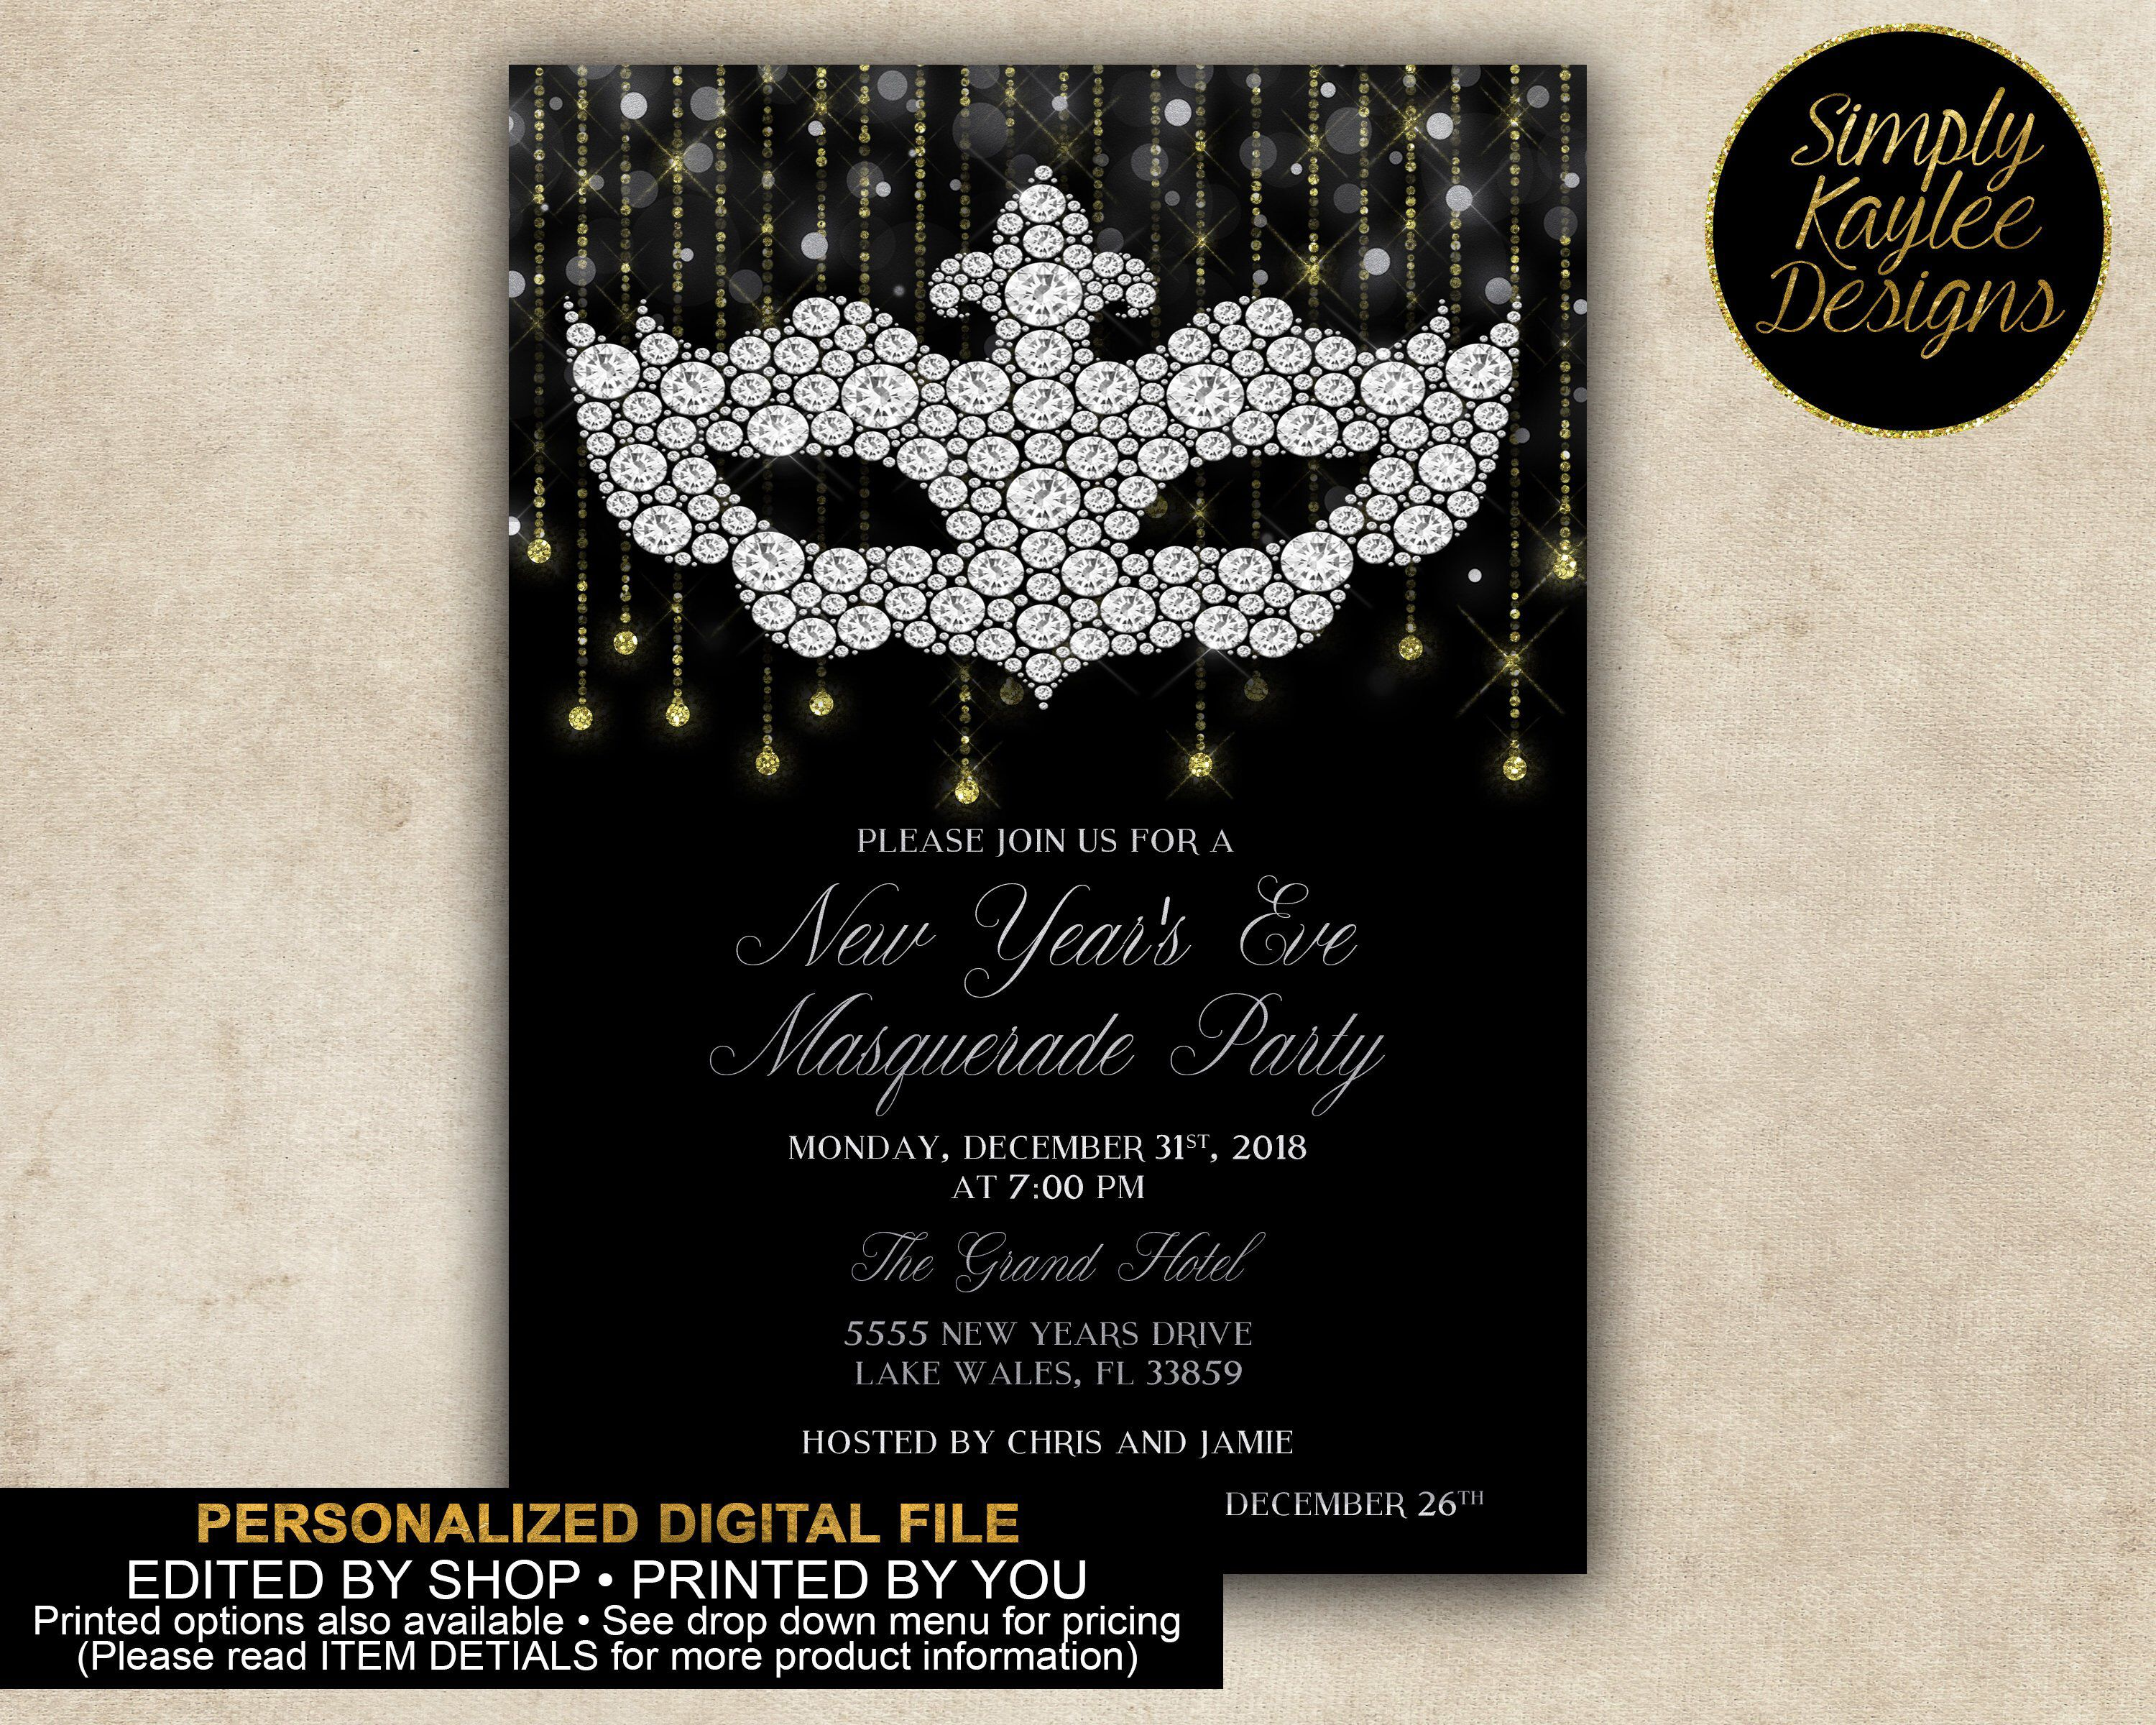 New Year S Eve Masquerade Party Invitation By Simplykayleedesigns On Etsy Https Www Etsy Masquerade Party Invitations Masquerade Invitations Masquerade Party